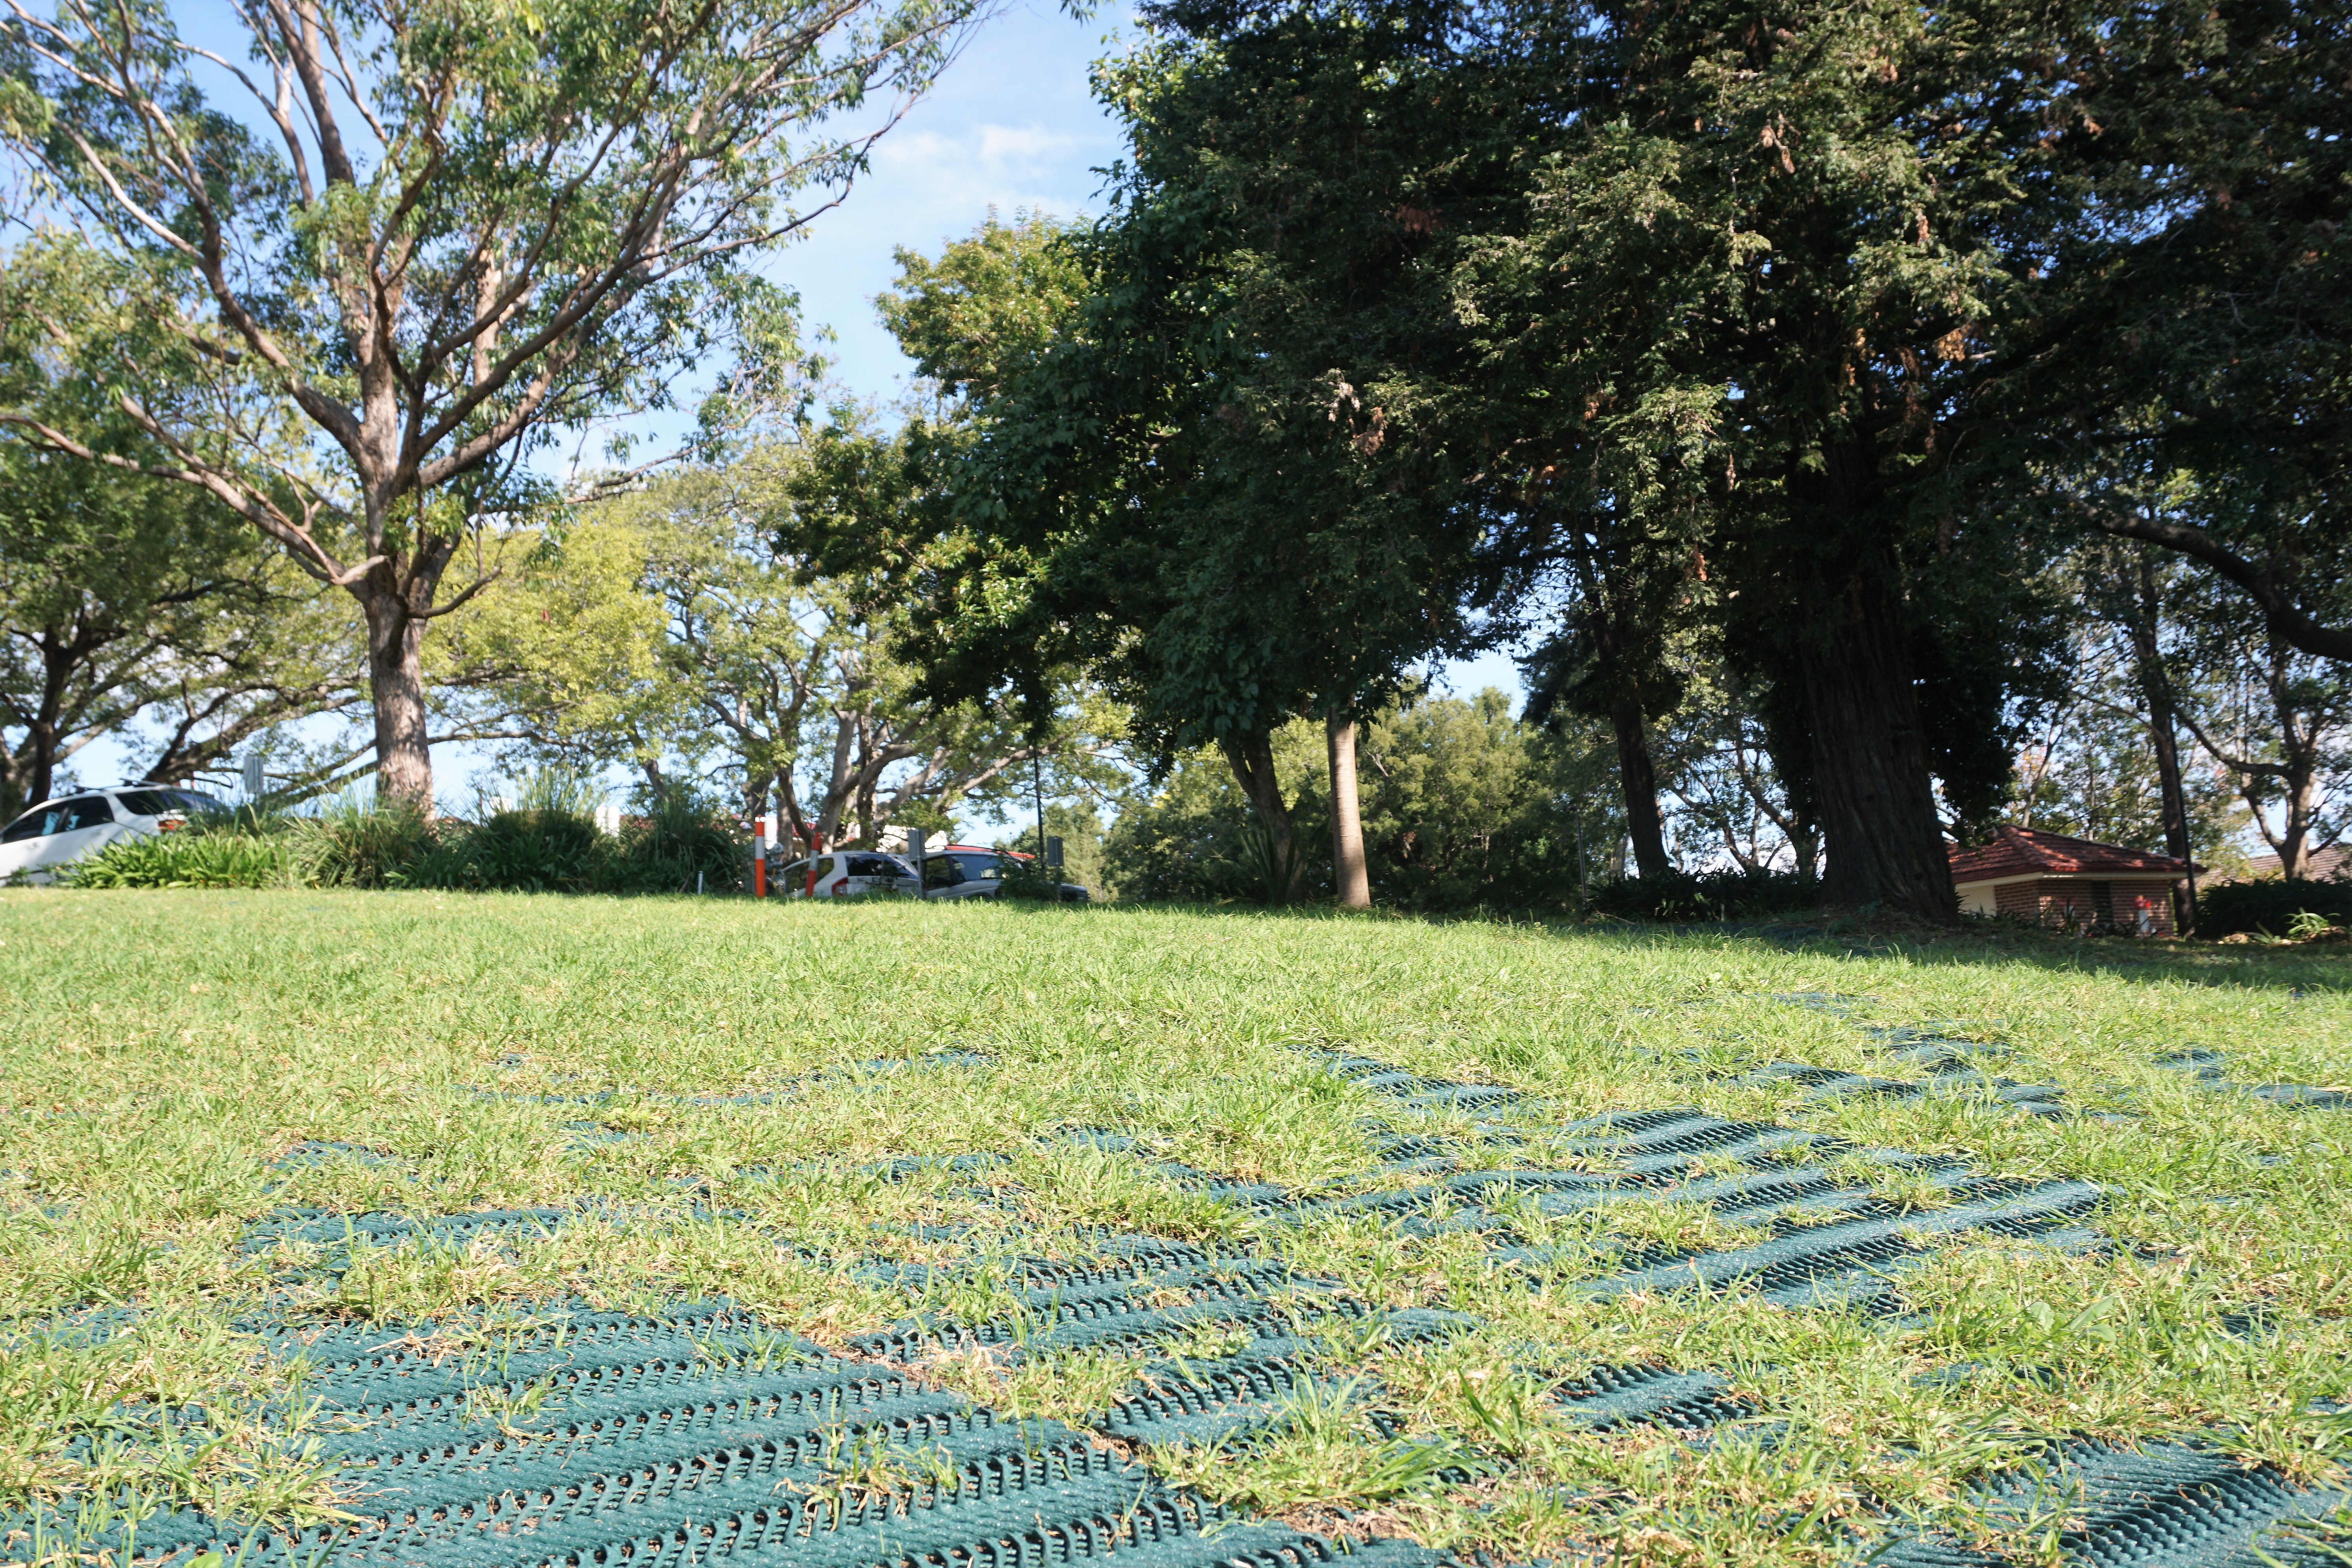 Grass Protecta  All Stake Supply  Grass Protection Mesh